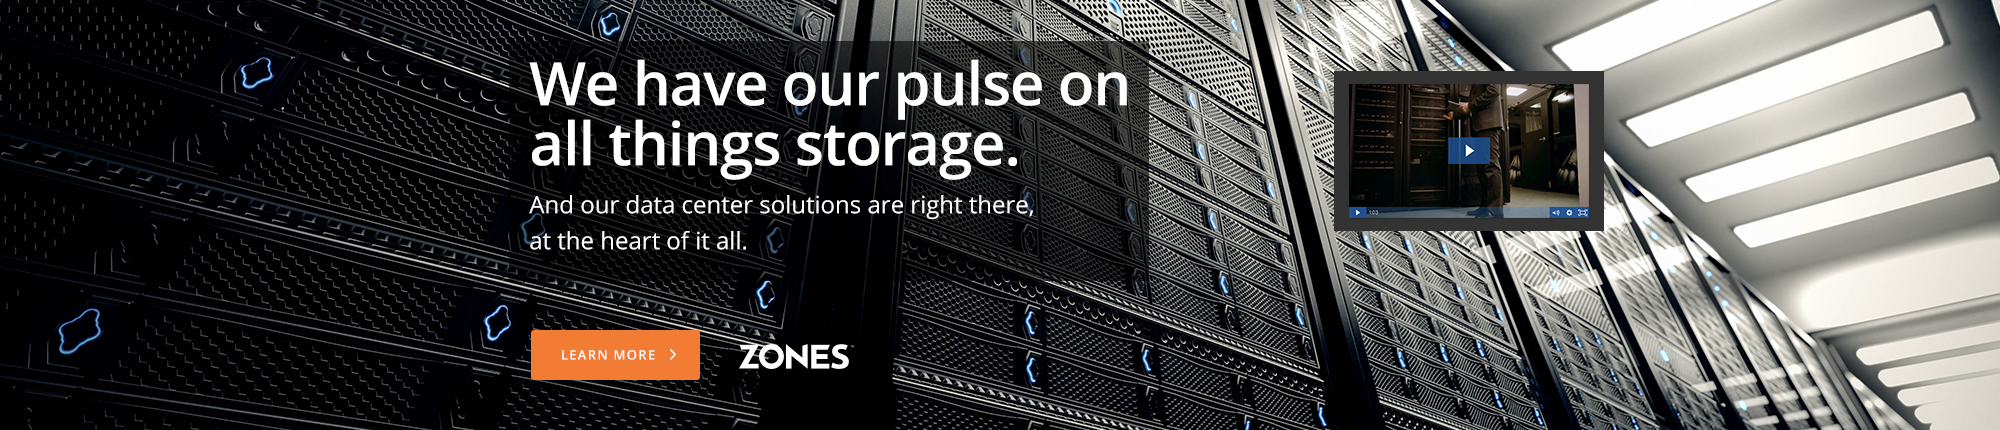 We have our pulse on all things storage. And our data center solutions are right there, at the heart of it all.